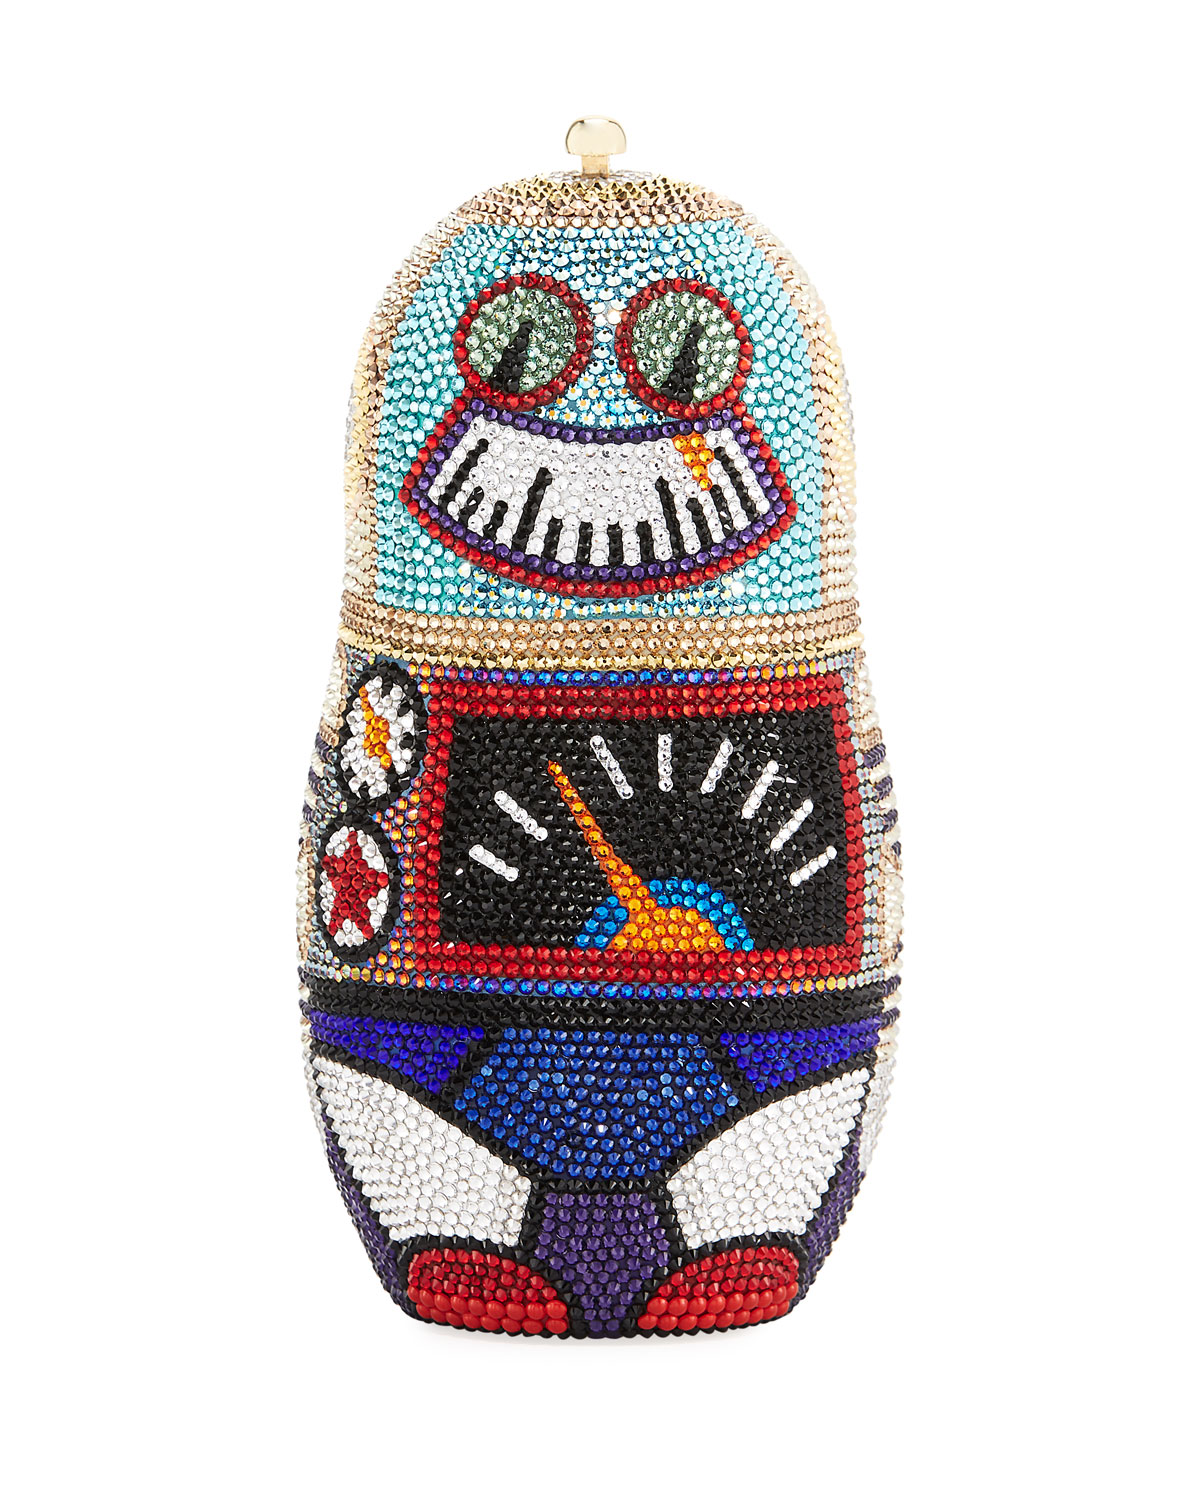 Robot Russian Doll Clutch Bag